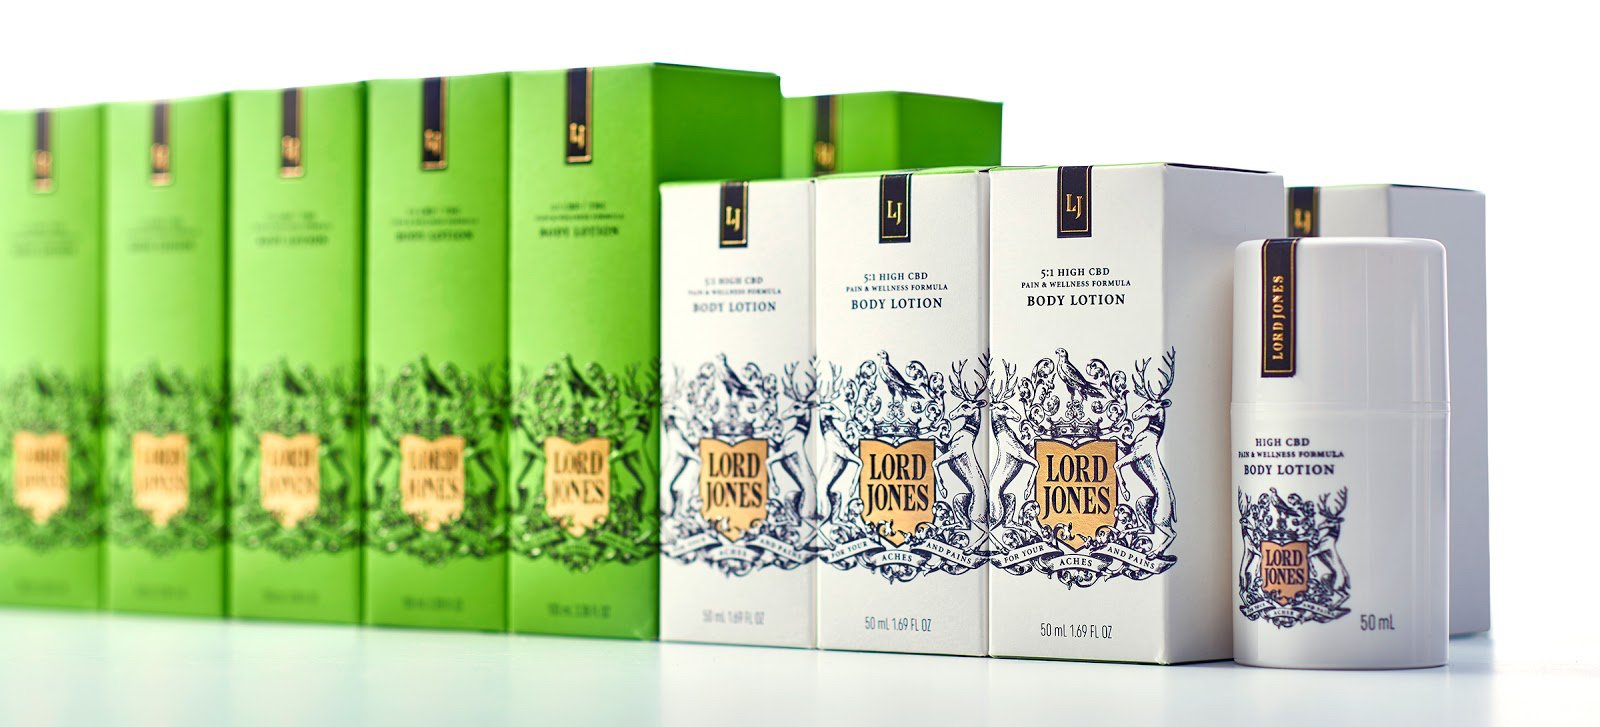 Lord Jones' CBD Competitors Could Follow Its $300M Deal With Jackpots Of Their Own